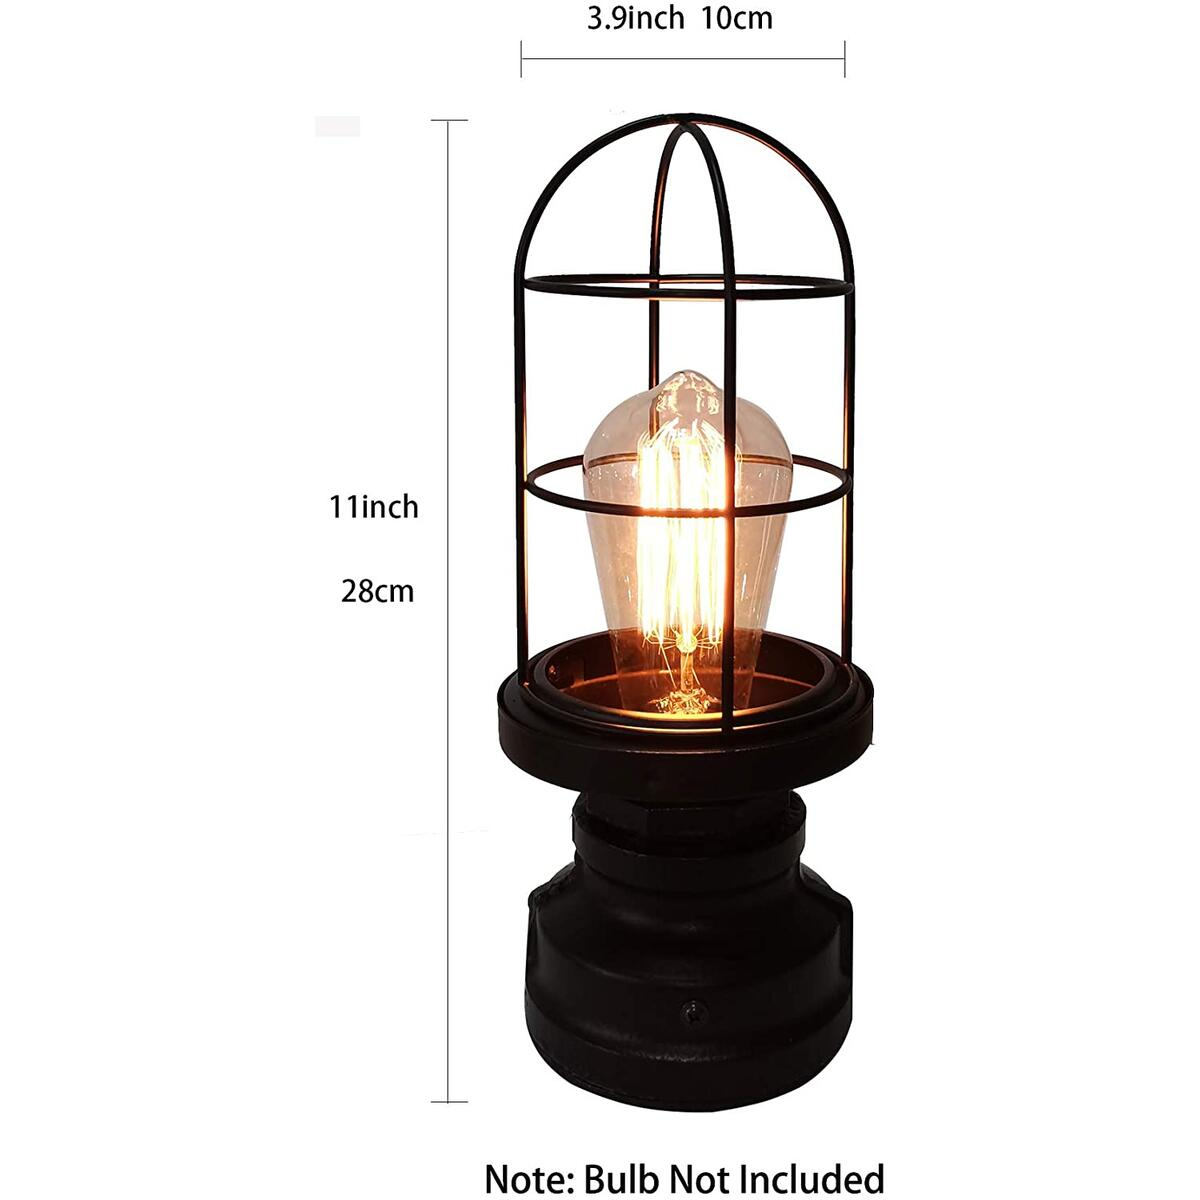 Touch Control Industrial Table LampBedside 3 Way Touch Light Dimmable Vintage Desk Lamps with Metal Wire Cage, Antique Water Pipe Steampunk Nightstand Lamp for Bedrooms